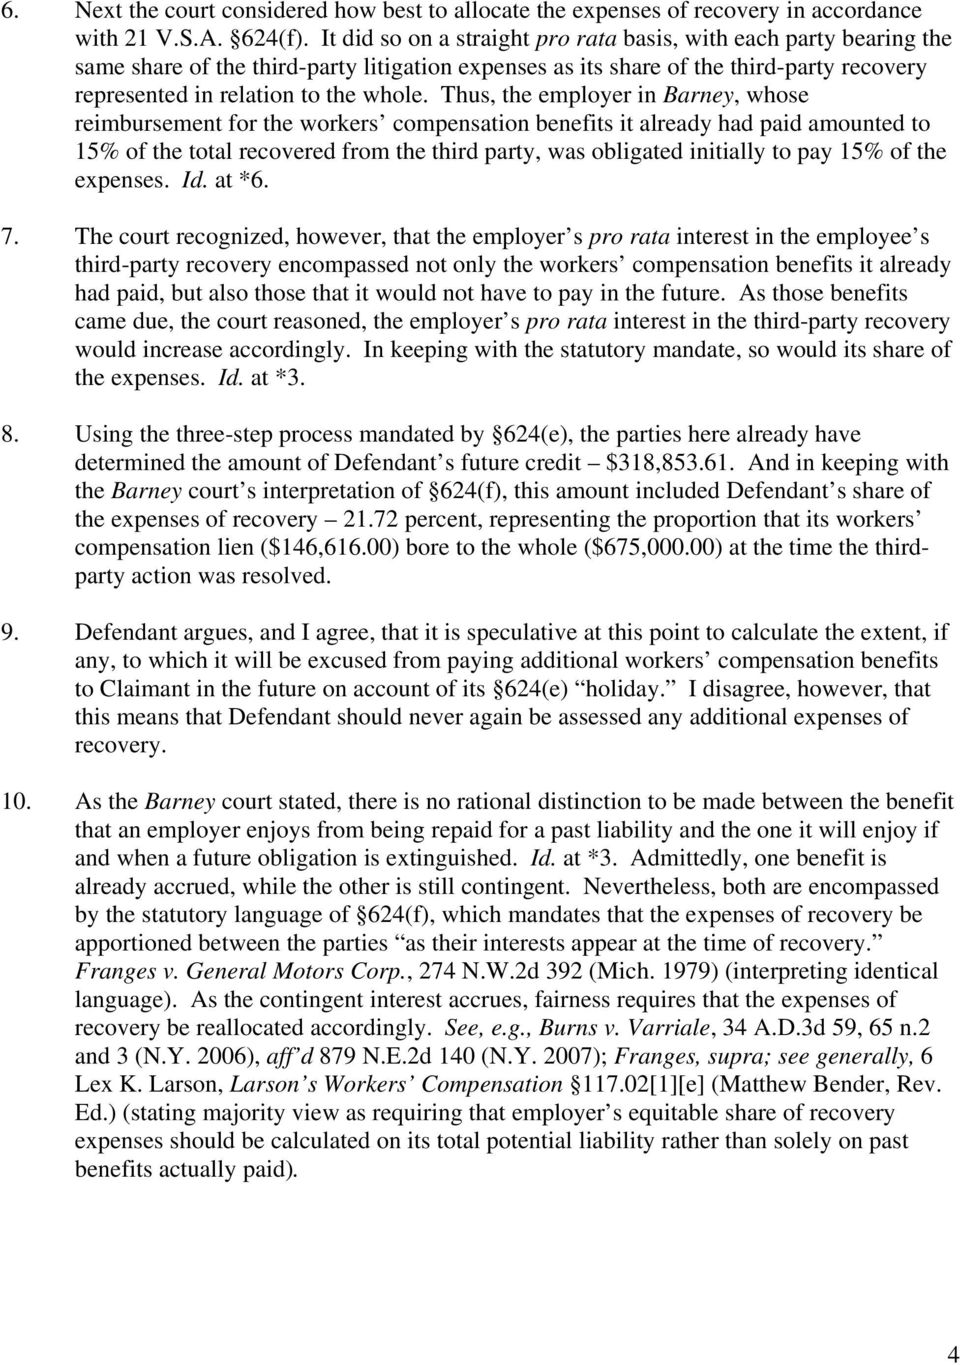 Thus, the employer in Barney, whose reimbursement for the workers compensation benefits it already had paid amounted to 15% of the total recovered from the third party, was obligated initially to pay